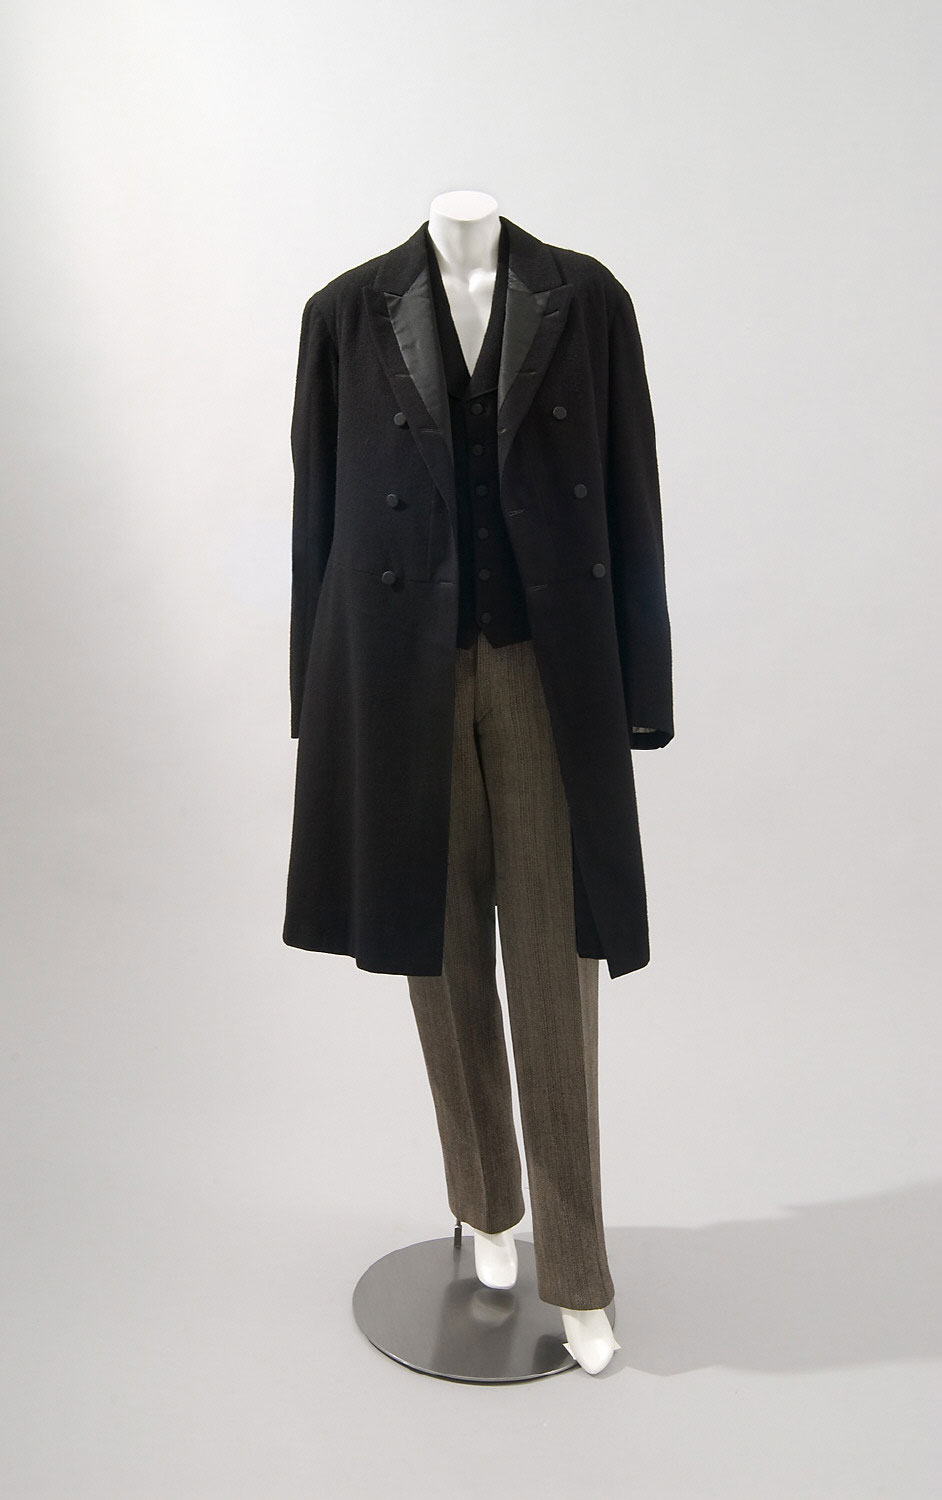 Man's Suit: Frock Coat, Waistcoat, and Trousers